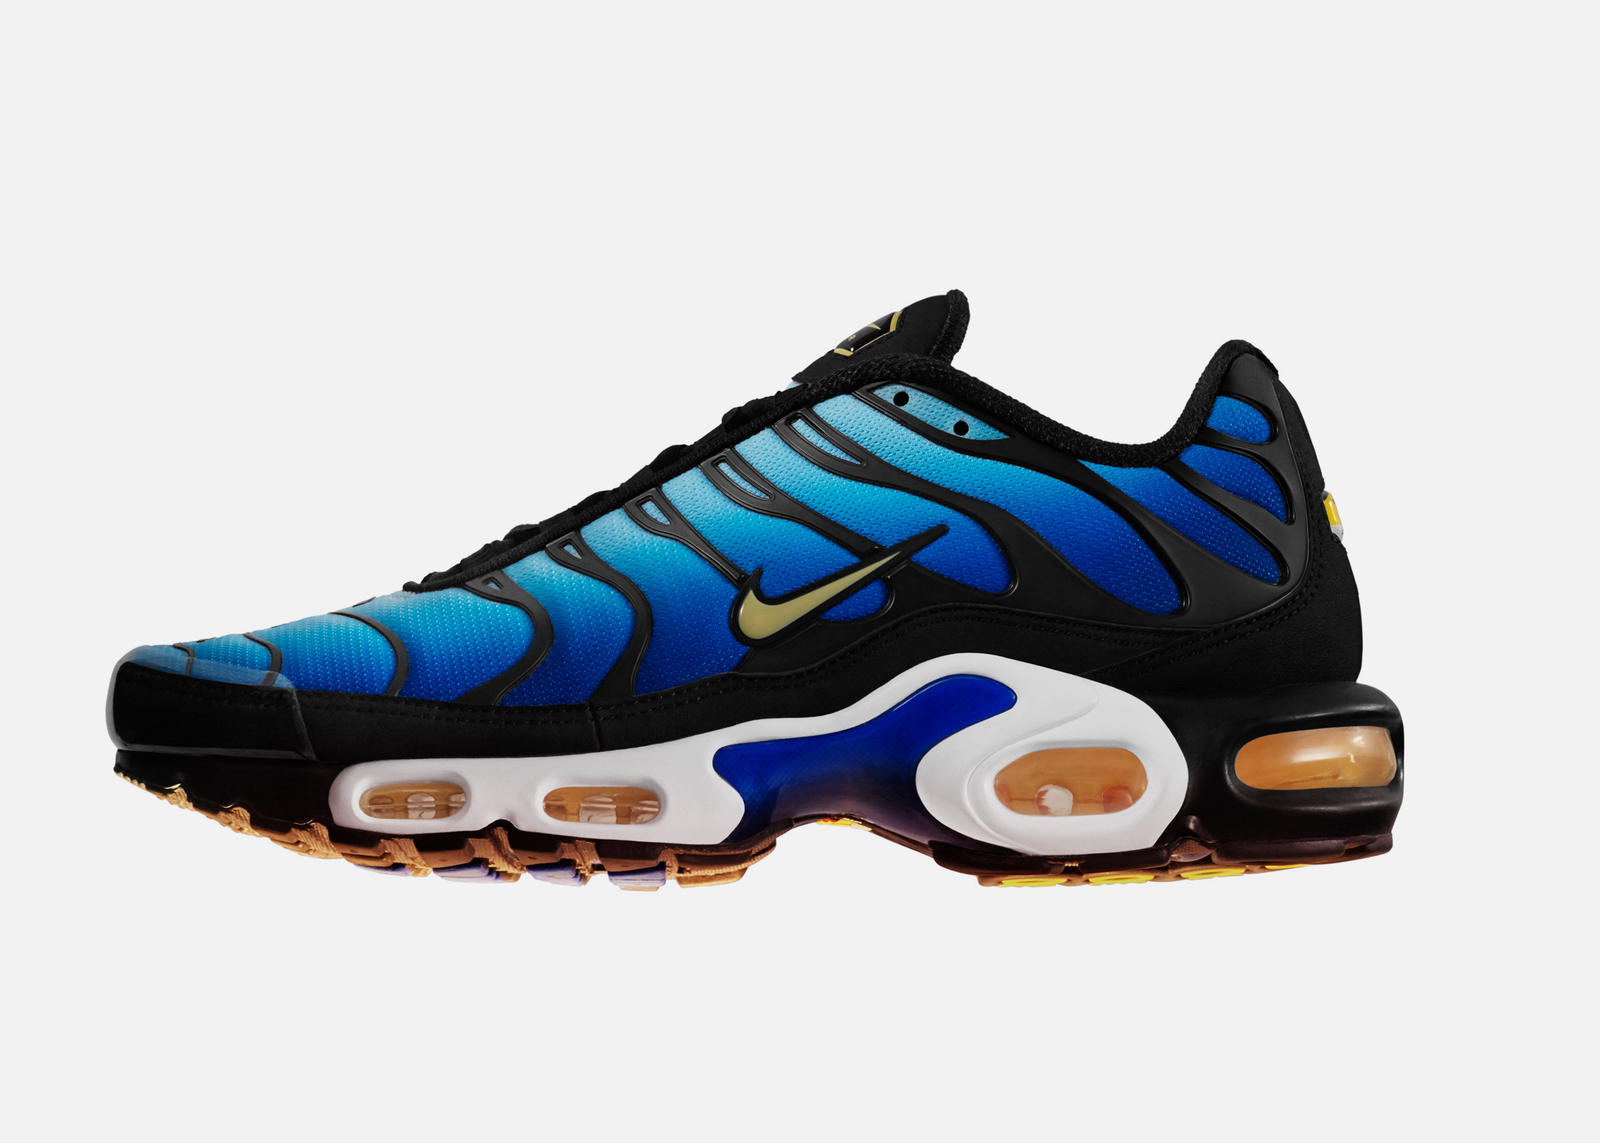 online retailer 5a7a8 56aa0 The Untold Story of the Nike Air Max Plus 20